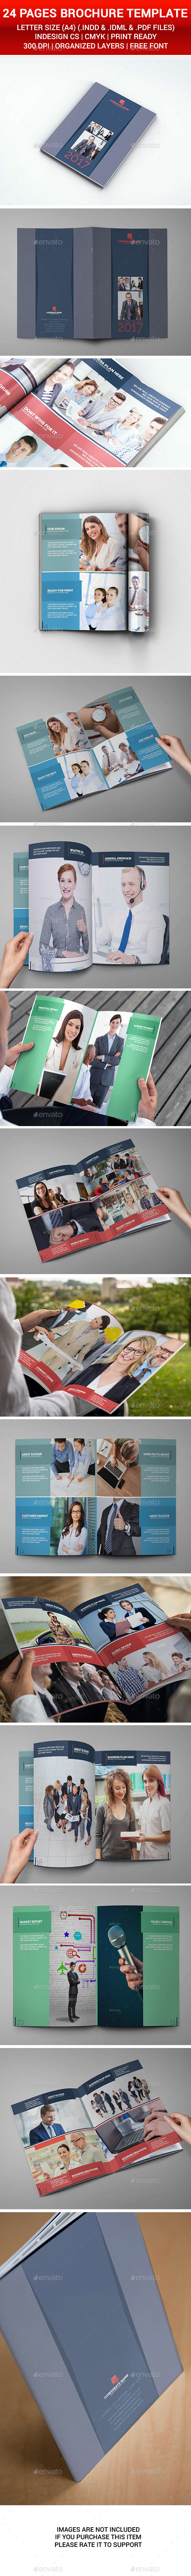 Corporate Brochure 24 Pages - Brochures Print Templates